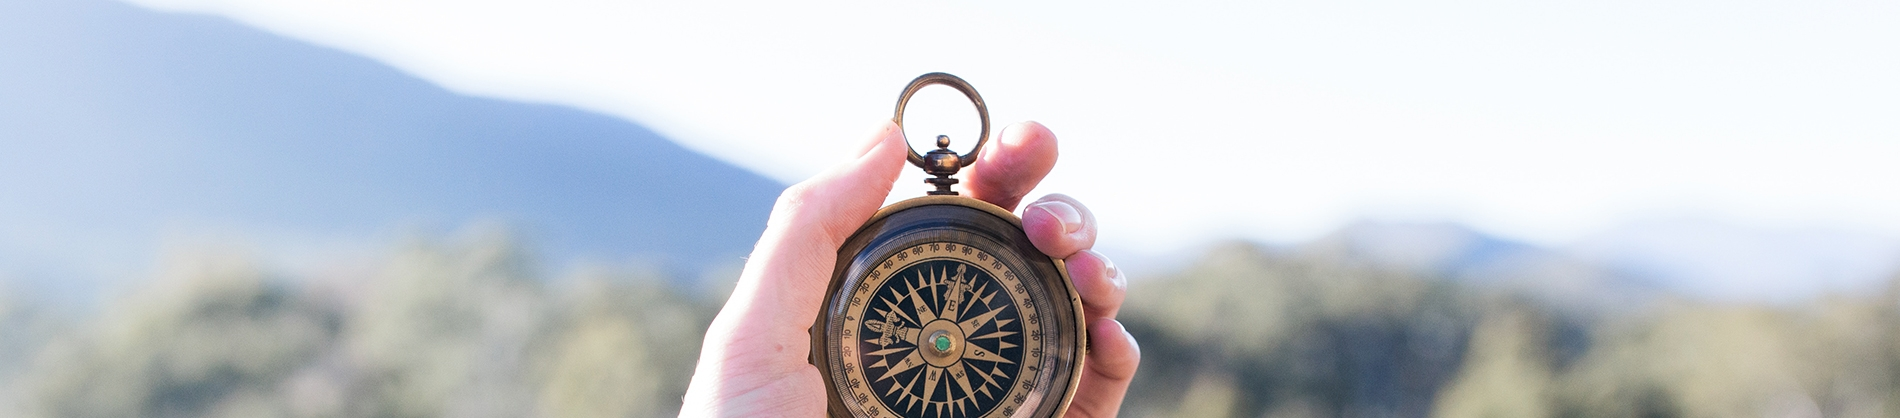 A hand holding a compass up with a landscape behind